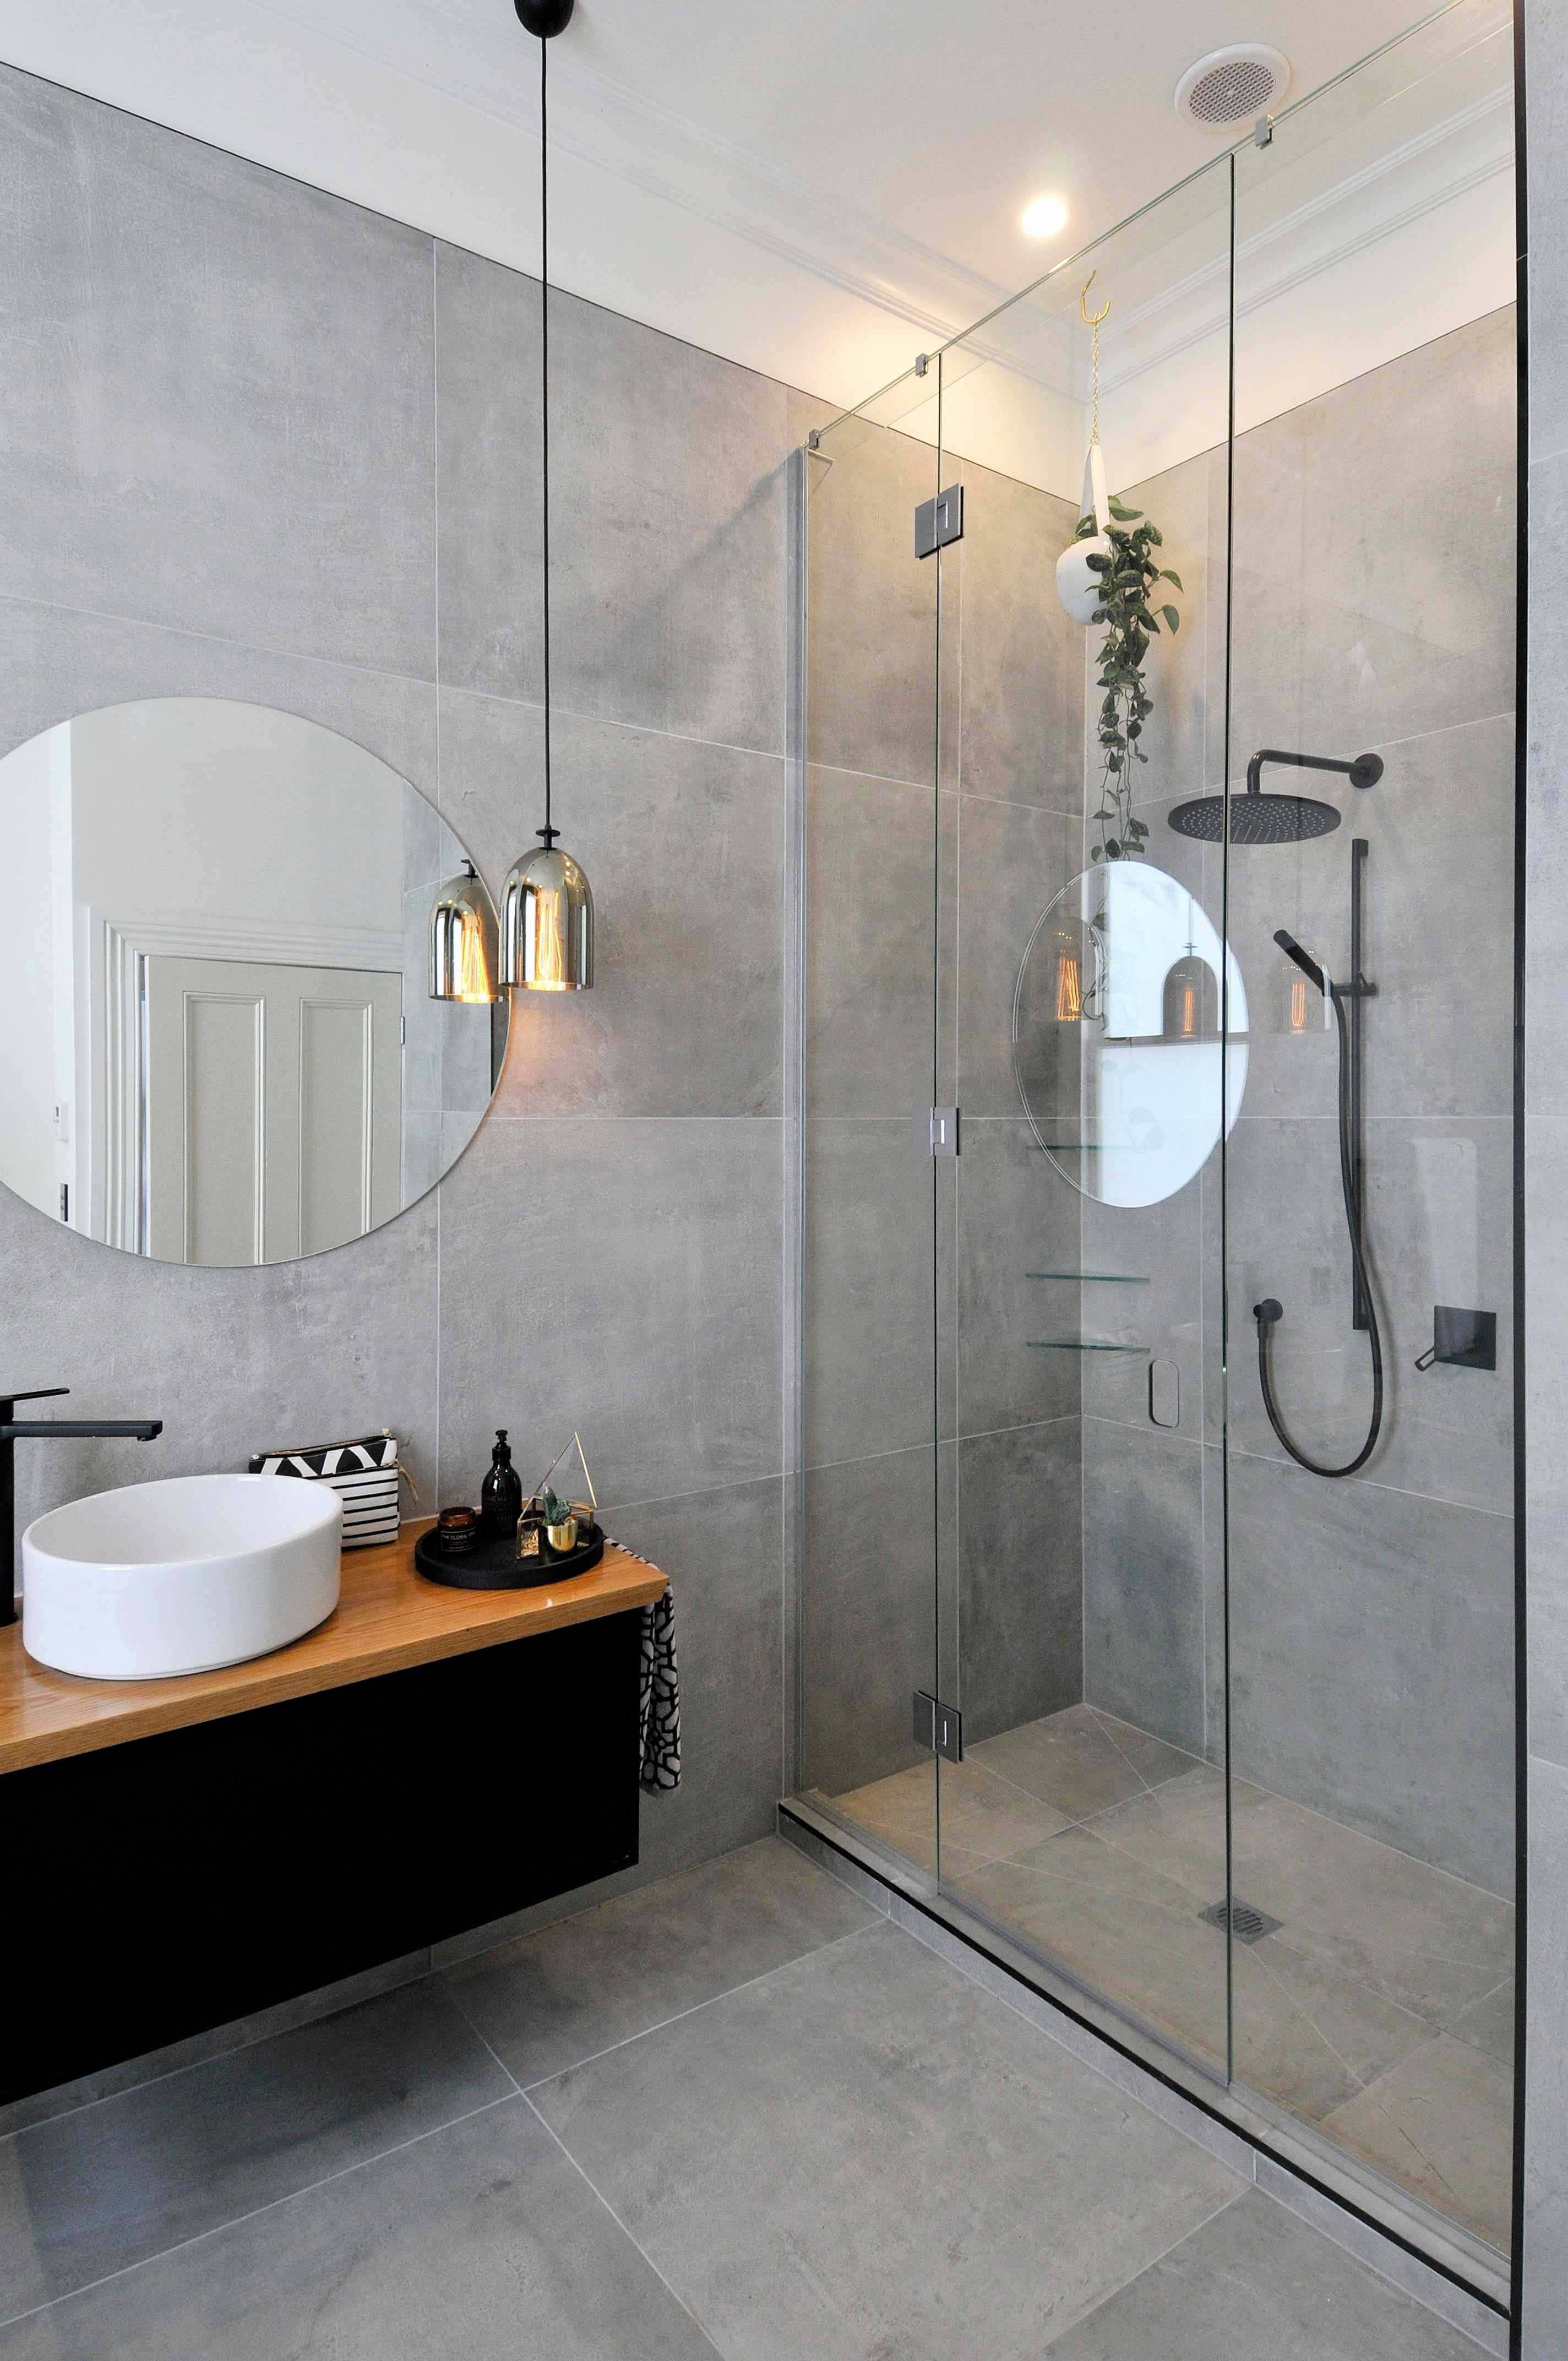 5 7 Bathroom Remodel Cost With Images Bathroom Interior